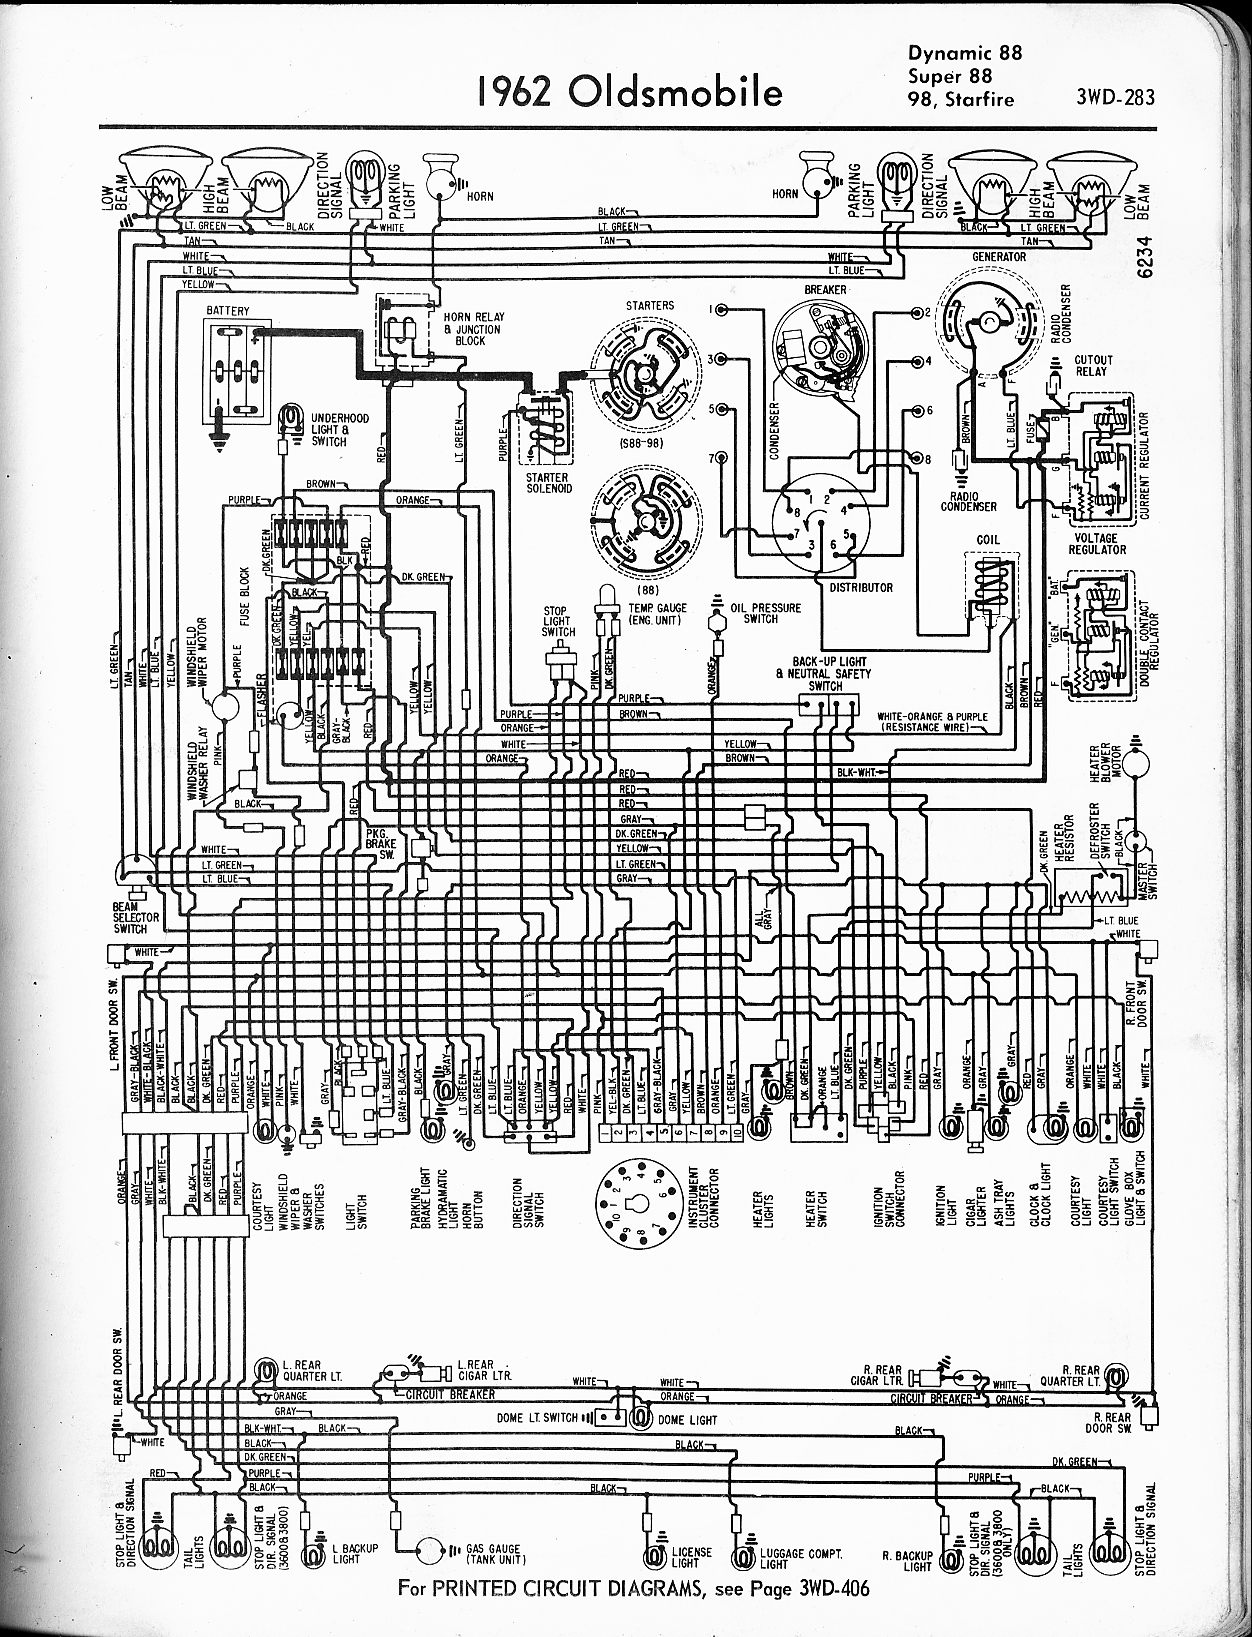 Dynamic wiring manual various owner manual guide oldsmobile wiring diagrams the old car manual project rh oldcarmanualproject com moeller wiring manual ford wiring manuals swarovskicordoba